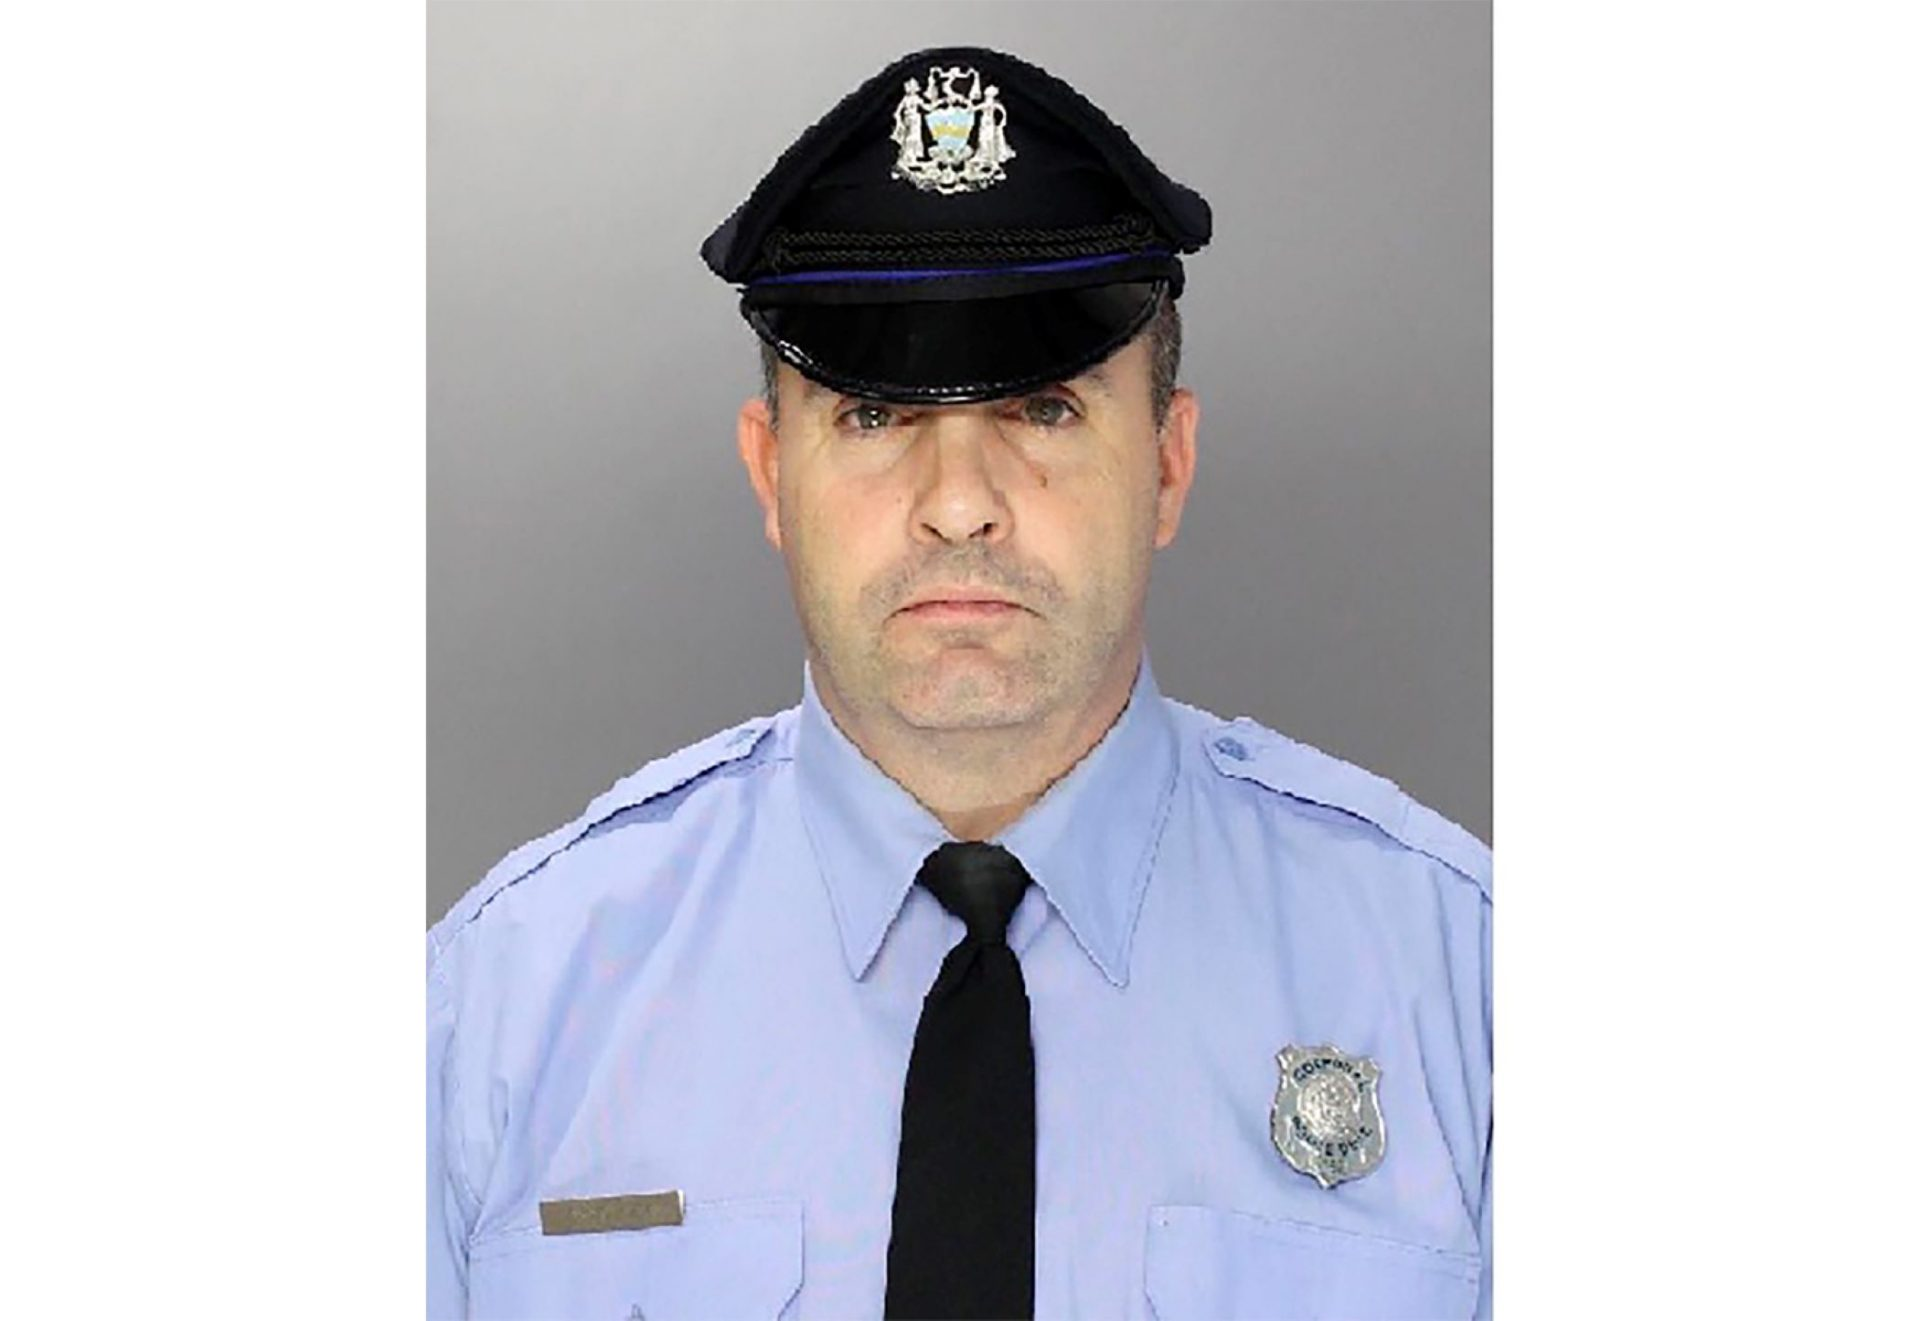 This undated photo provided by Philadelphia Police Department shows Corporal James O'Connor. O'Çonnor was shot and killed early Friday, March 13, 2020 as he served a homicide warrant at a home in the Philadelphia's Frankford section.